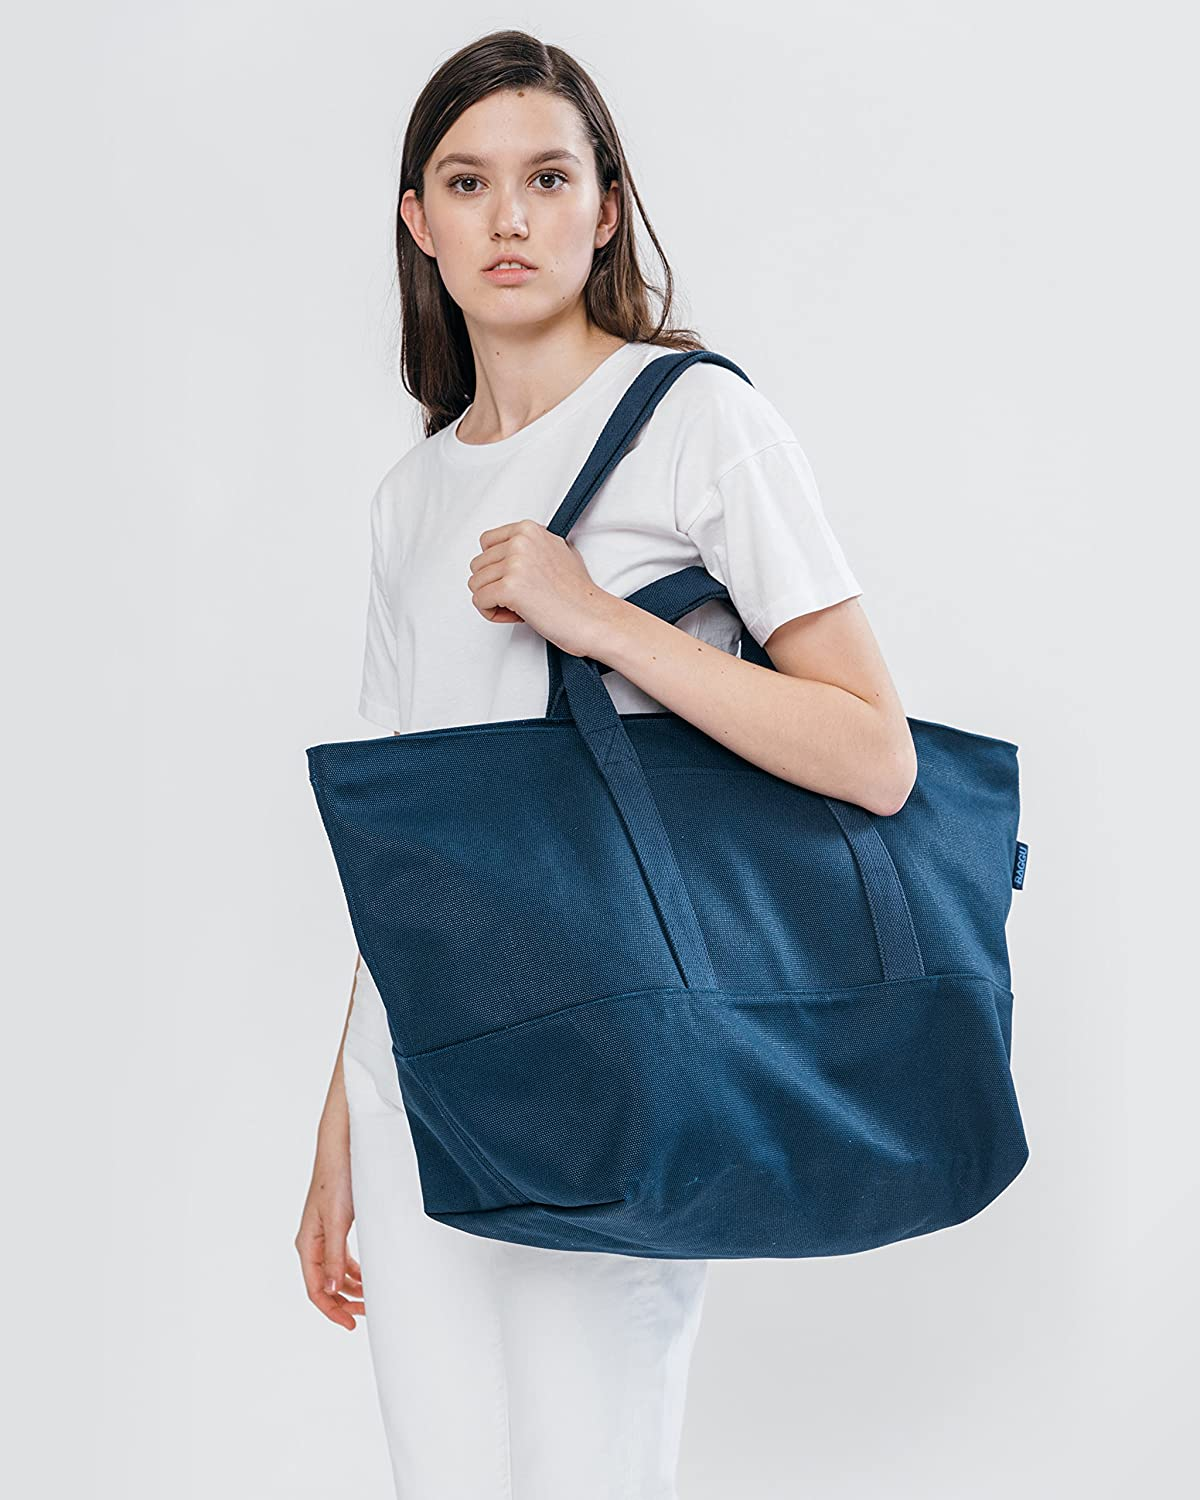 BAGGU Womens Weekend Bag Roomy and Durable Canvas Carry-on Travel Tote